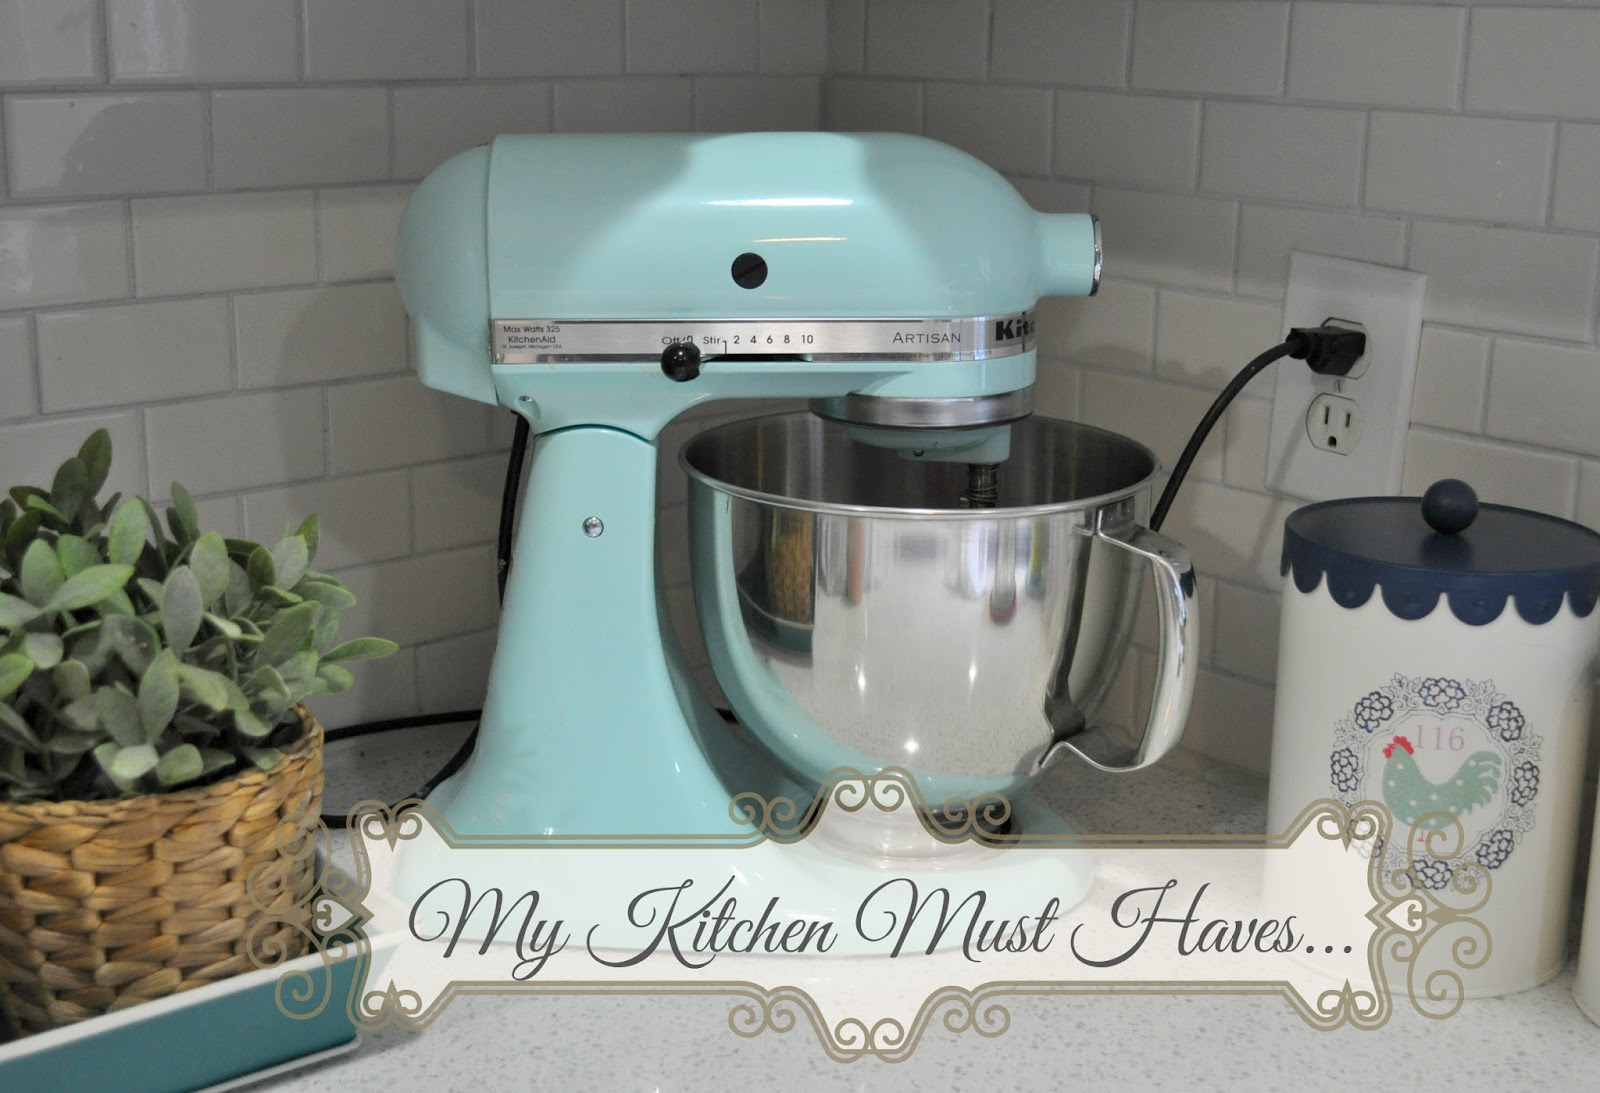 Marvelous My Kitchen Must Haves.